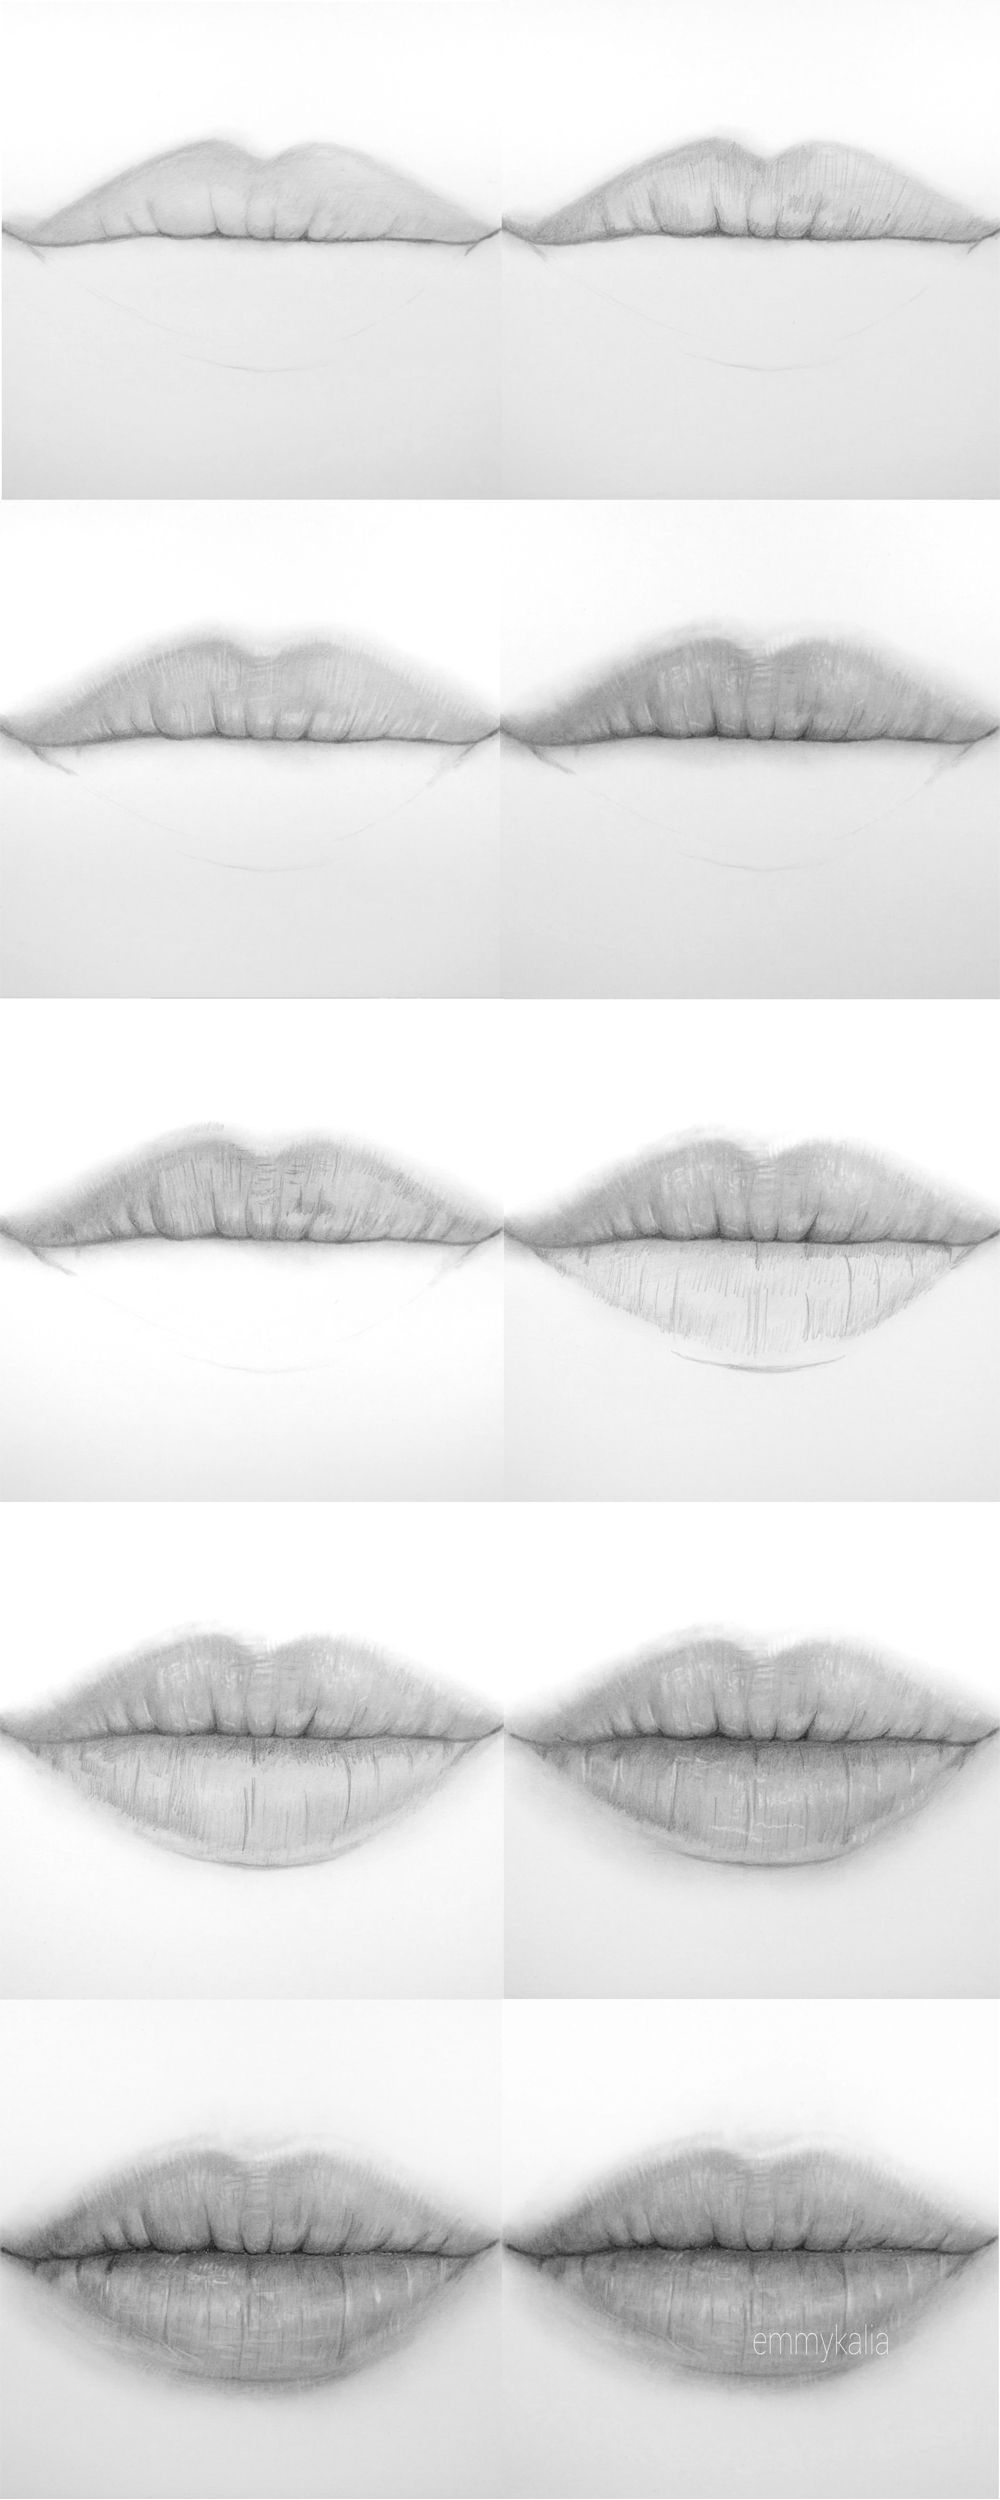 Pin by sydney on drawing steps mouth drawing pencil drawings